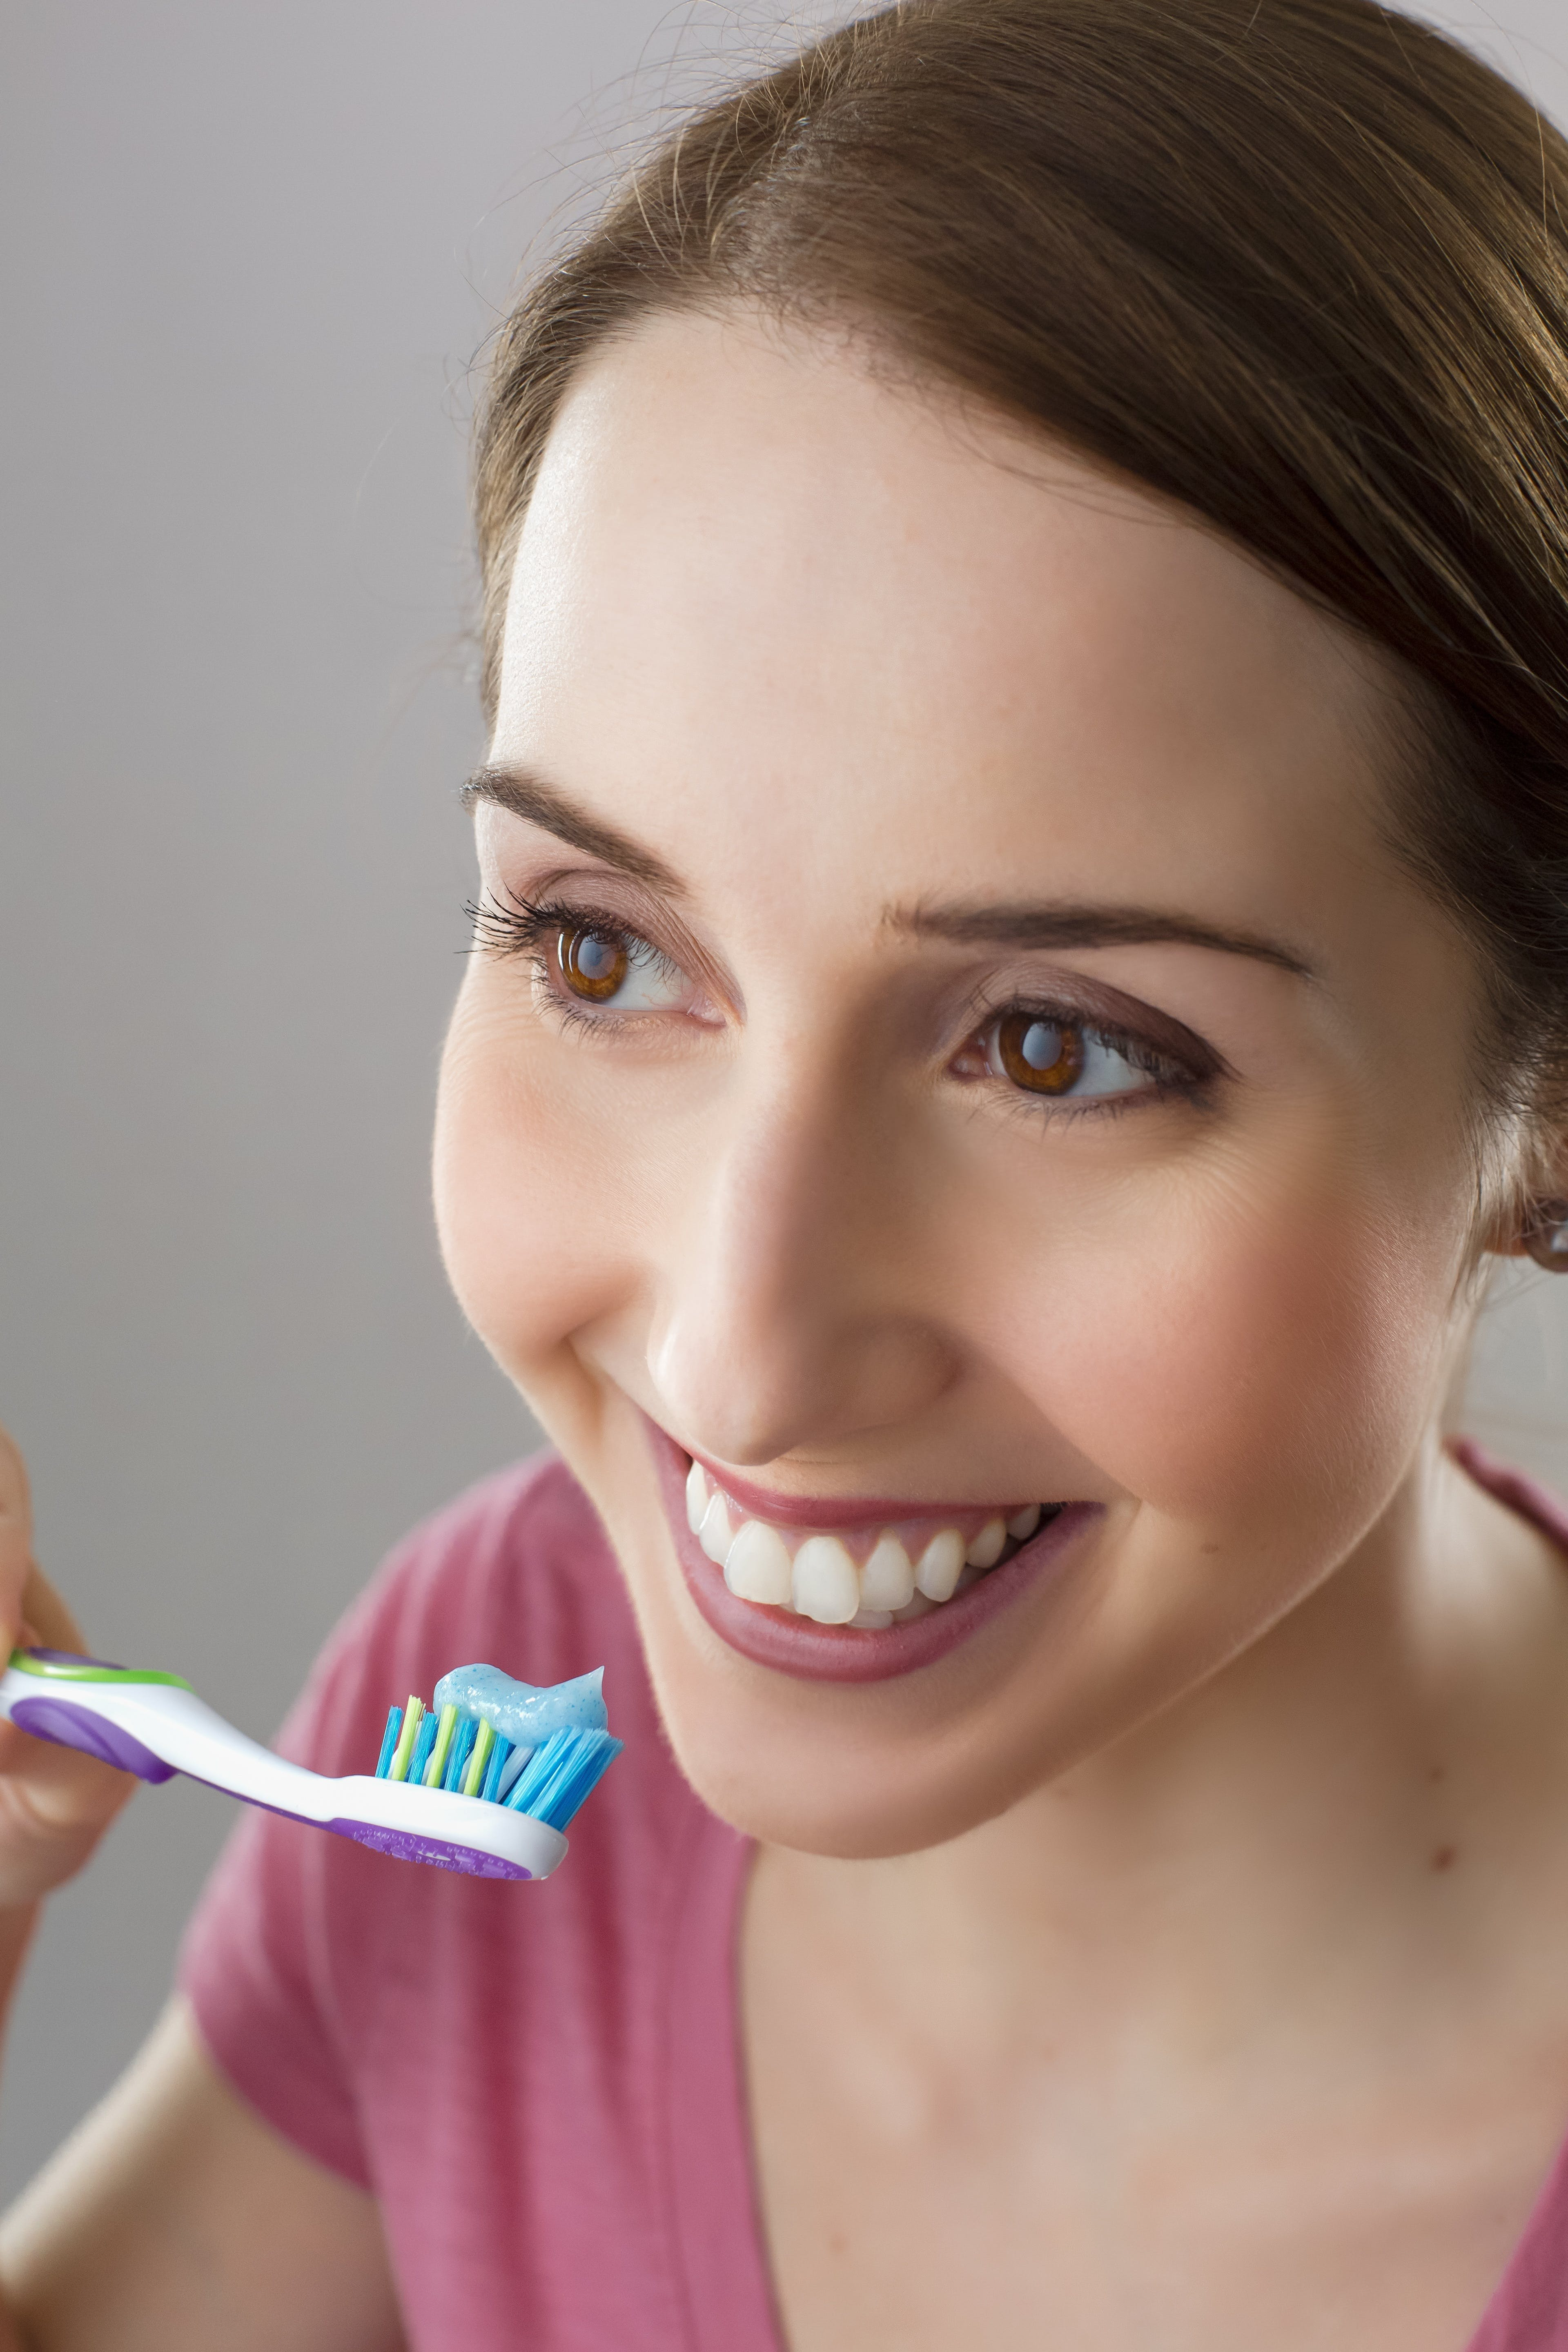 Free stock photo of woman, smile, dentist, tooth